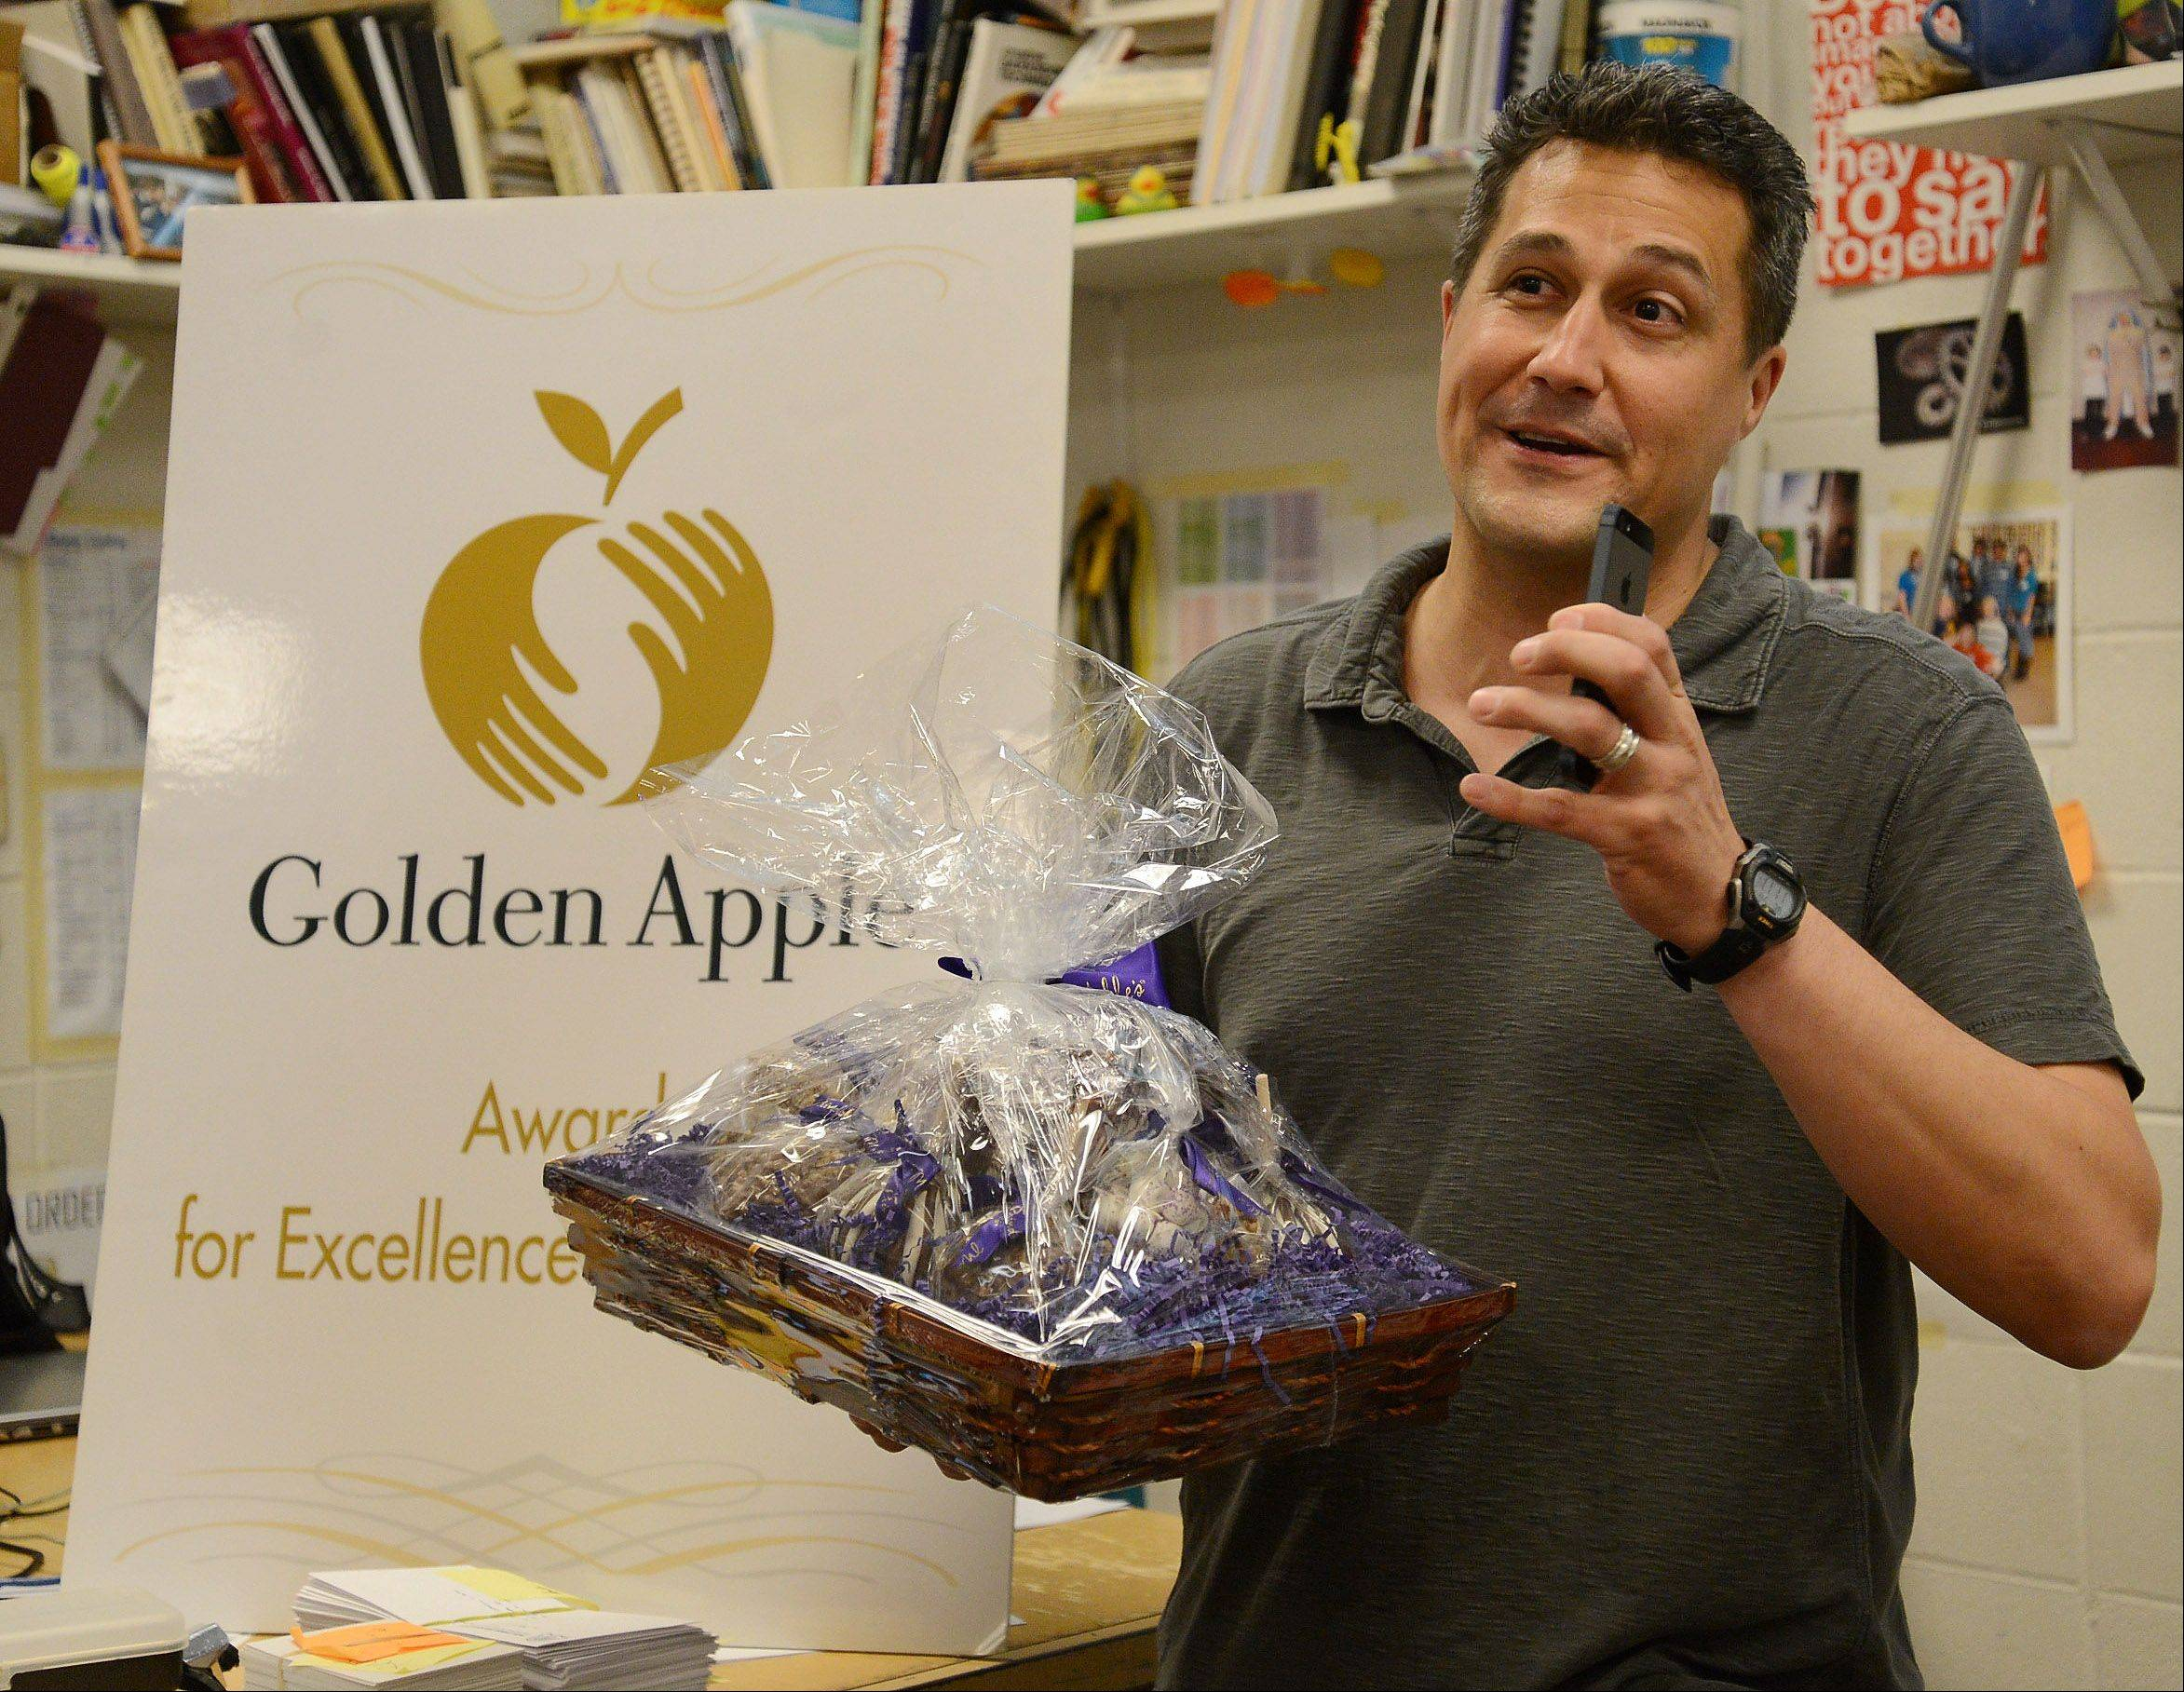 Gregory Regalado, who teaches art, photography and advanced digital imaging at Maine West High School in Des Plaines, was surprised with the news Wednesday that he's been chosen for the coveted Golden Apple Award for Excellence in Teaching. Regalado recorded the moment with his phone.